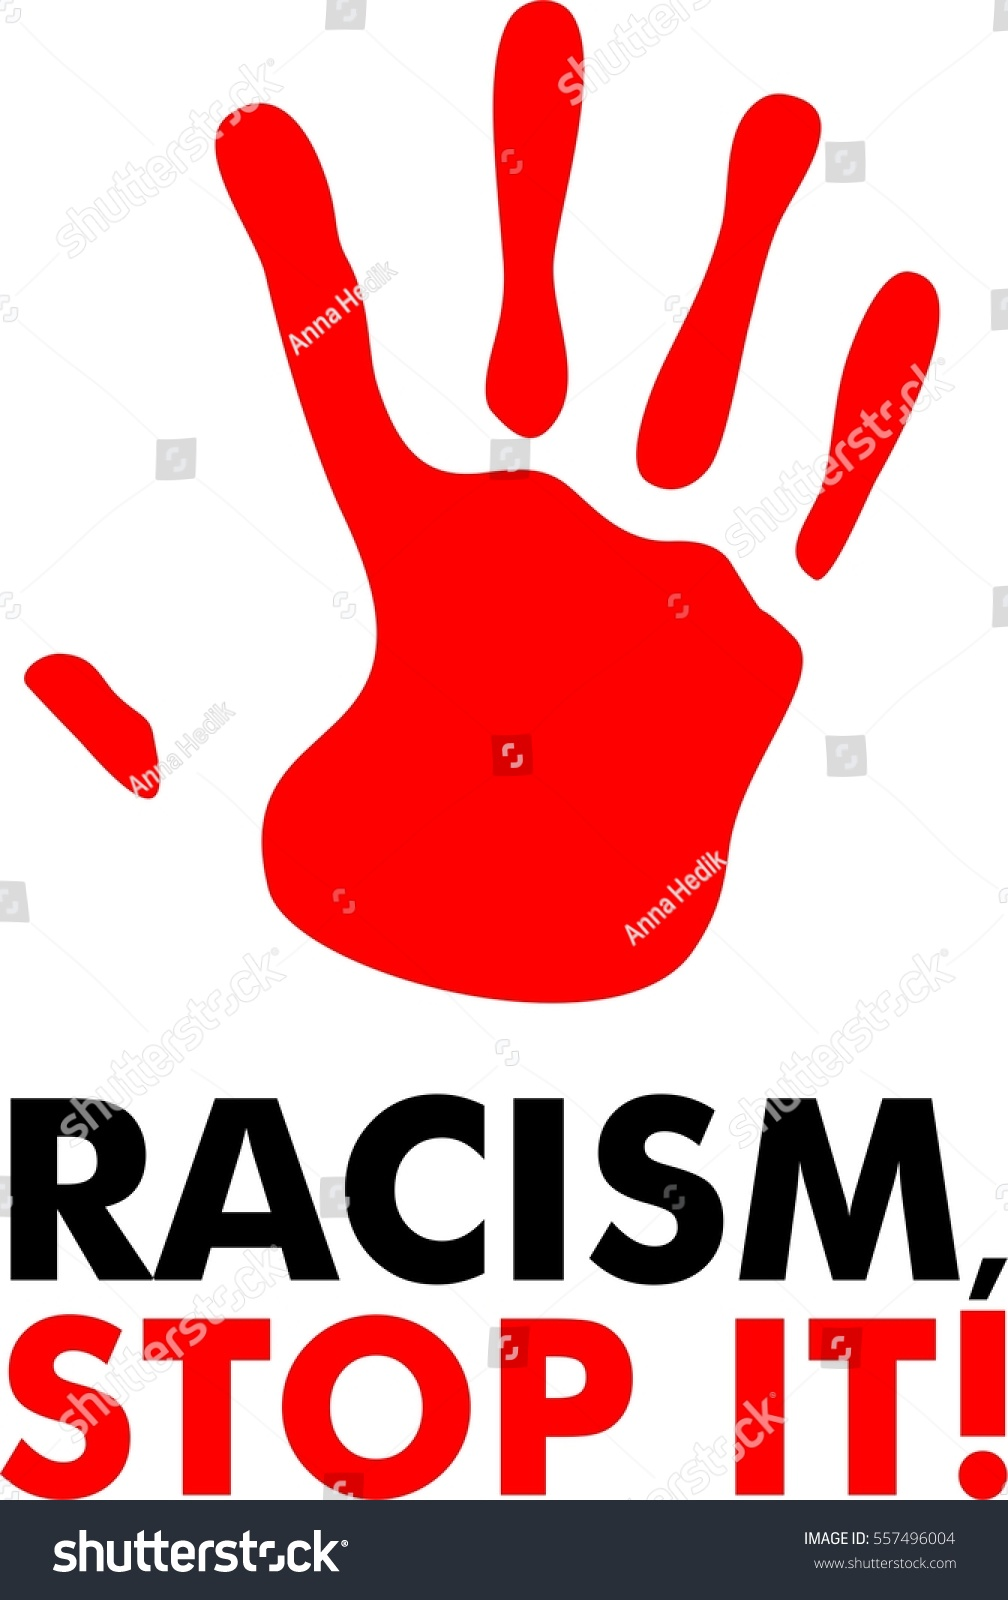 Racism stop it stop racism red stock vector 557496004 shutterstock racism stop it stop racism red hand icon flat biocorpaavc Images